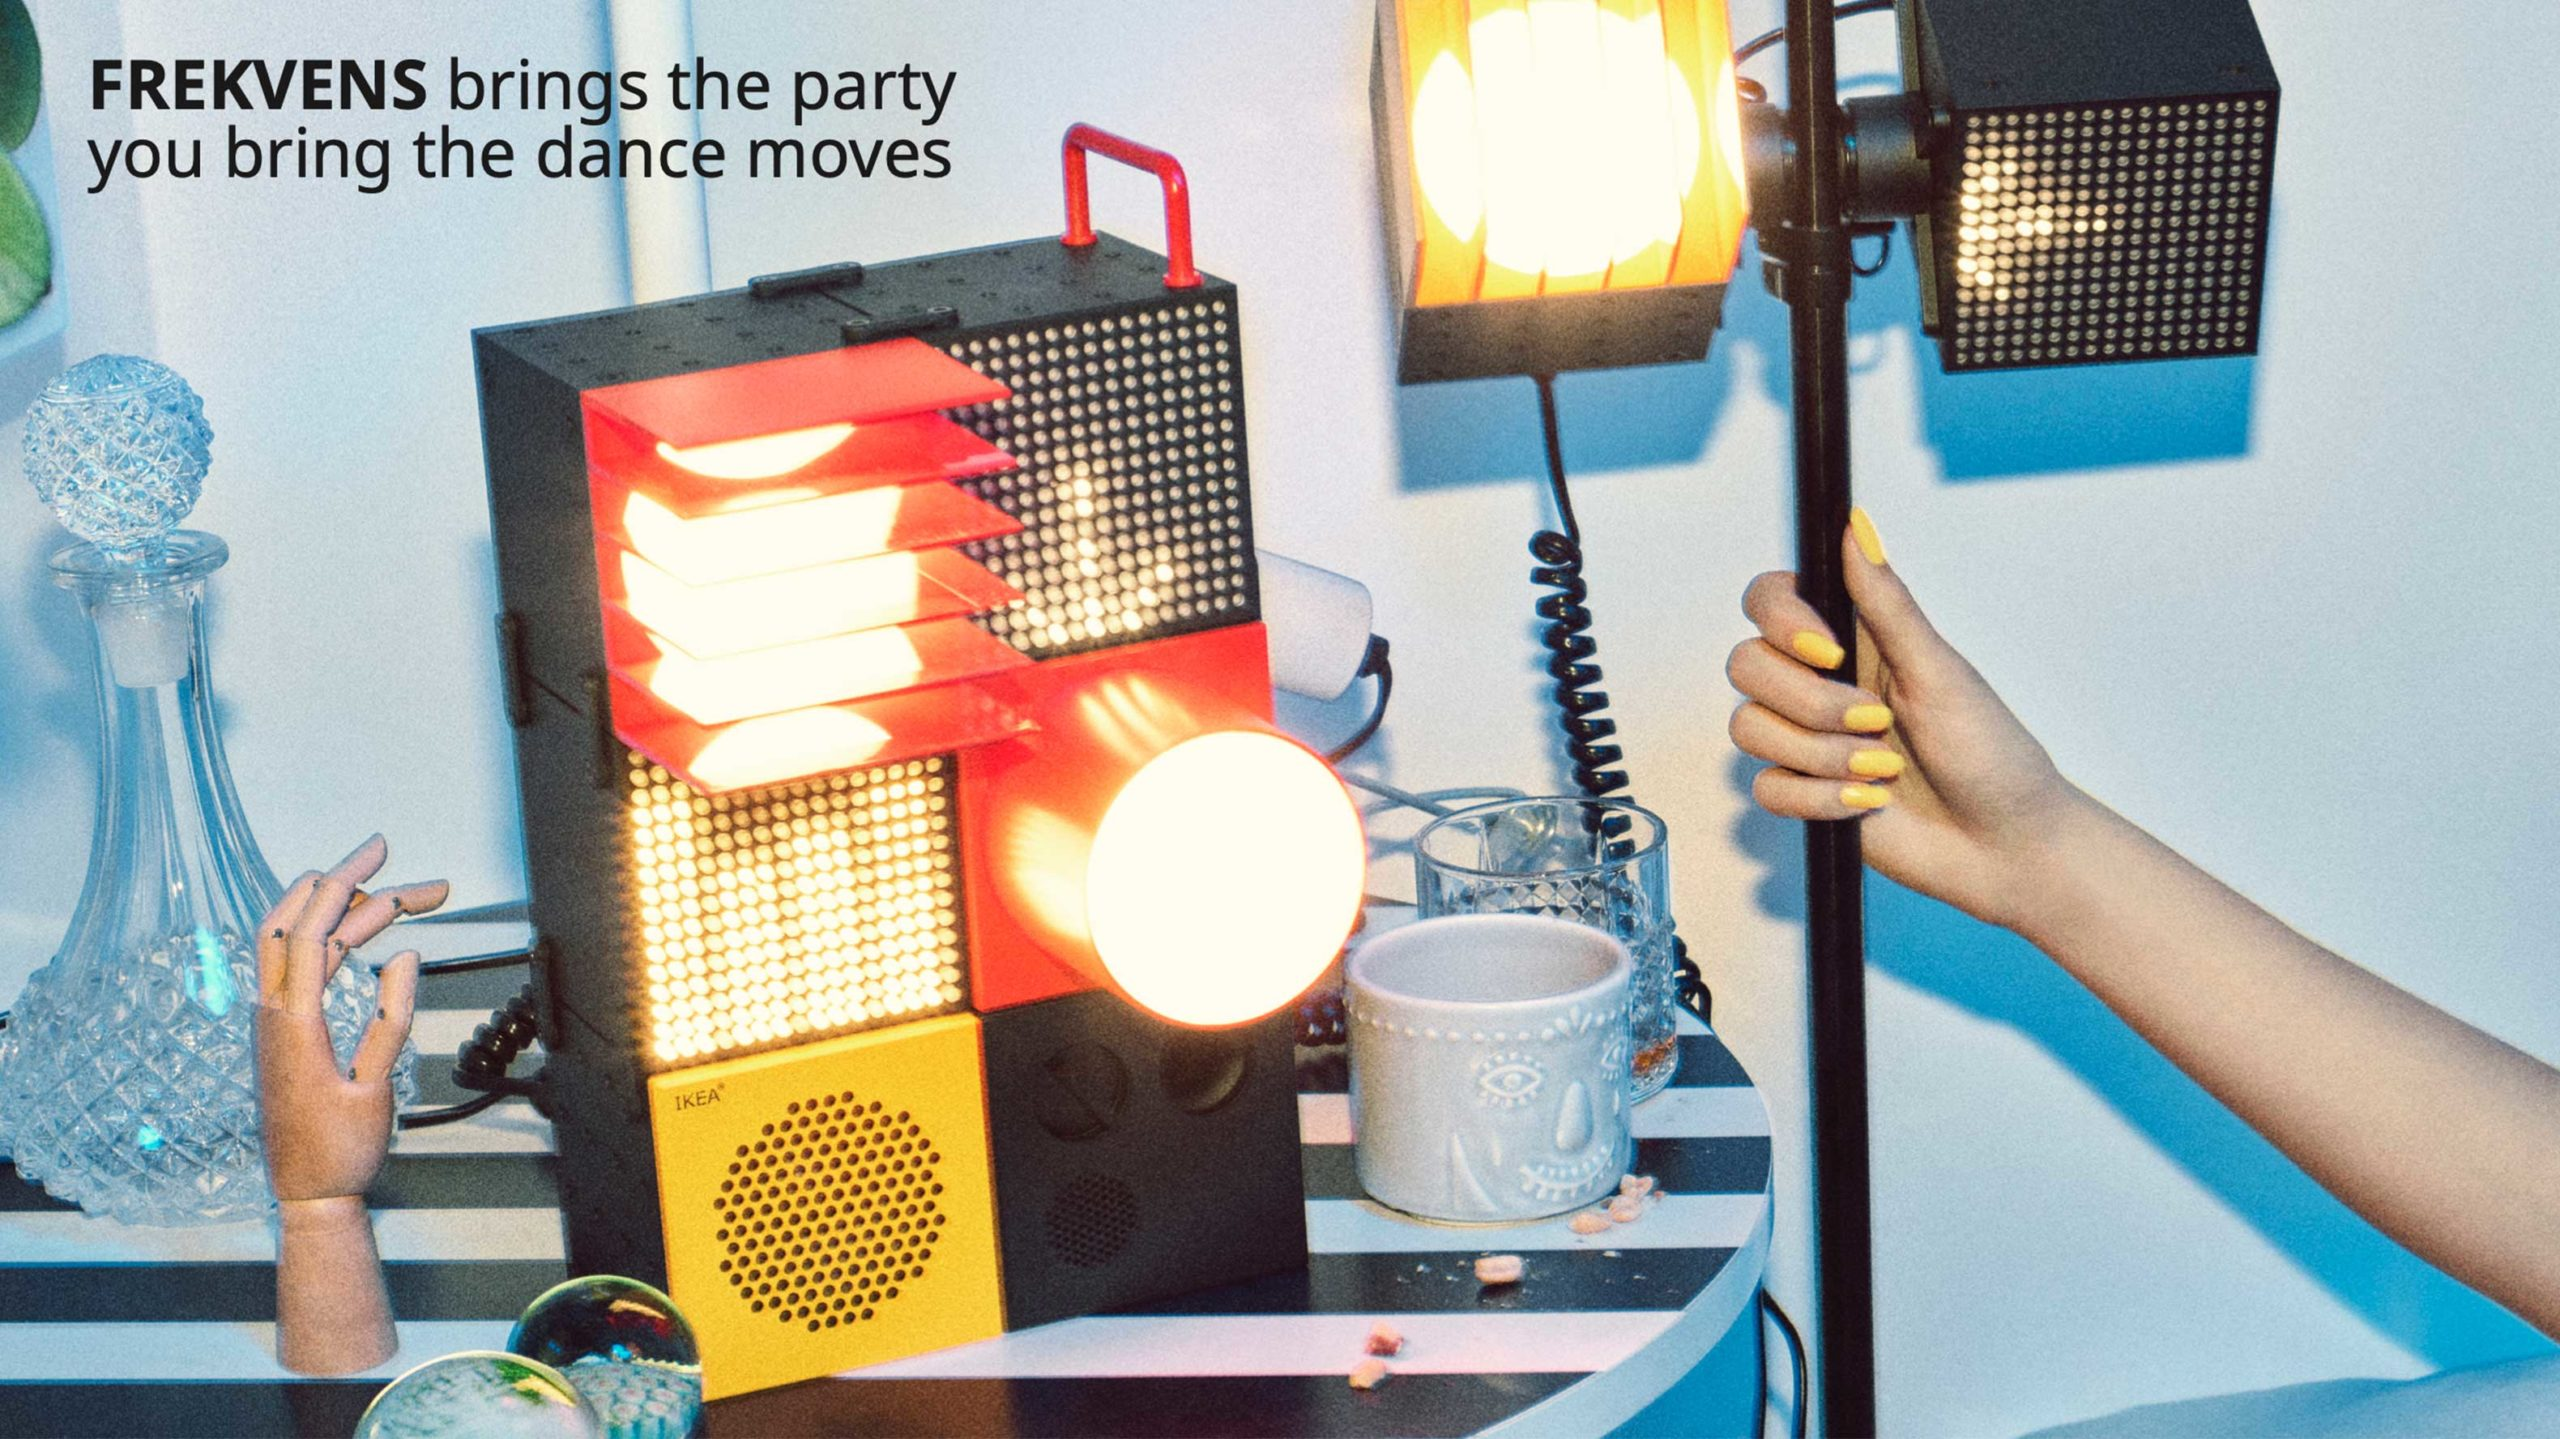 Ikea collaborates with Teenage Engineering on speakers and